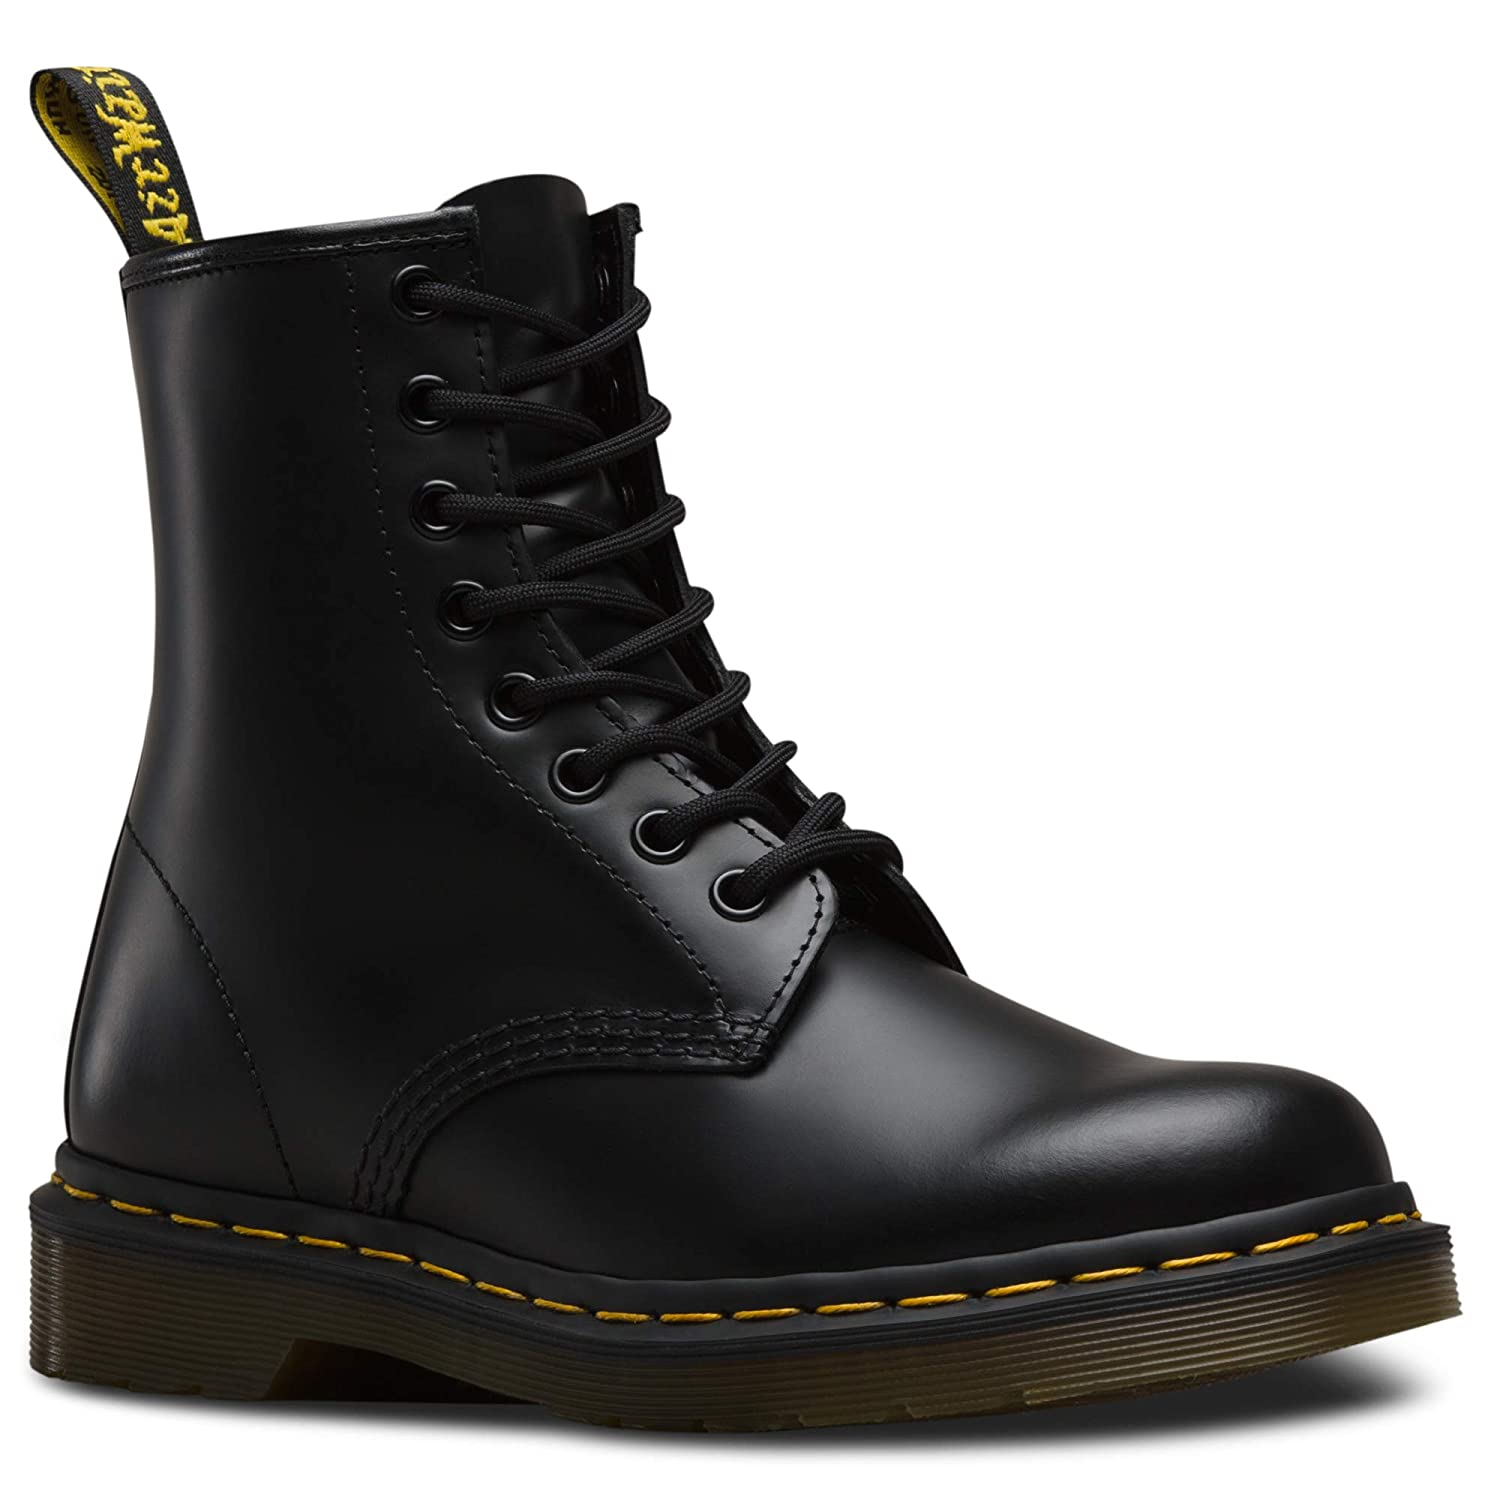 Dr Martens Unisex Adult 1460 Originals 8 Eye Lace Up Boot